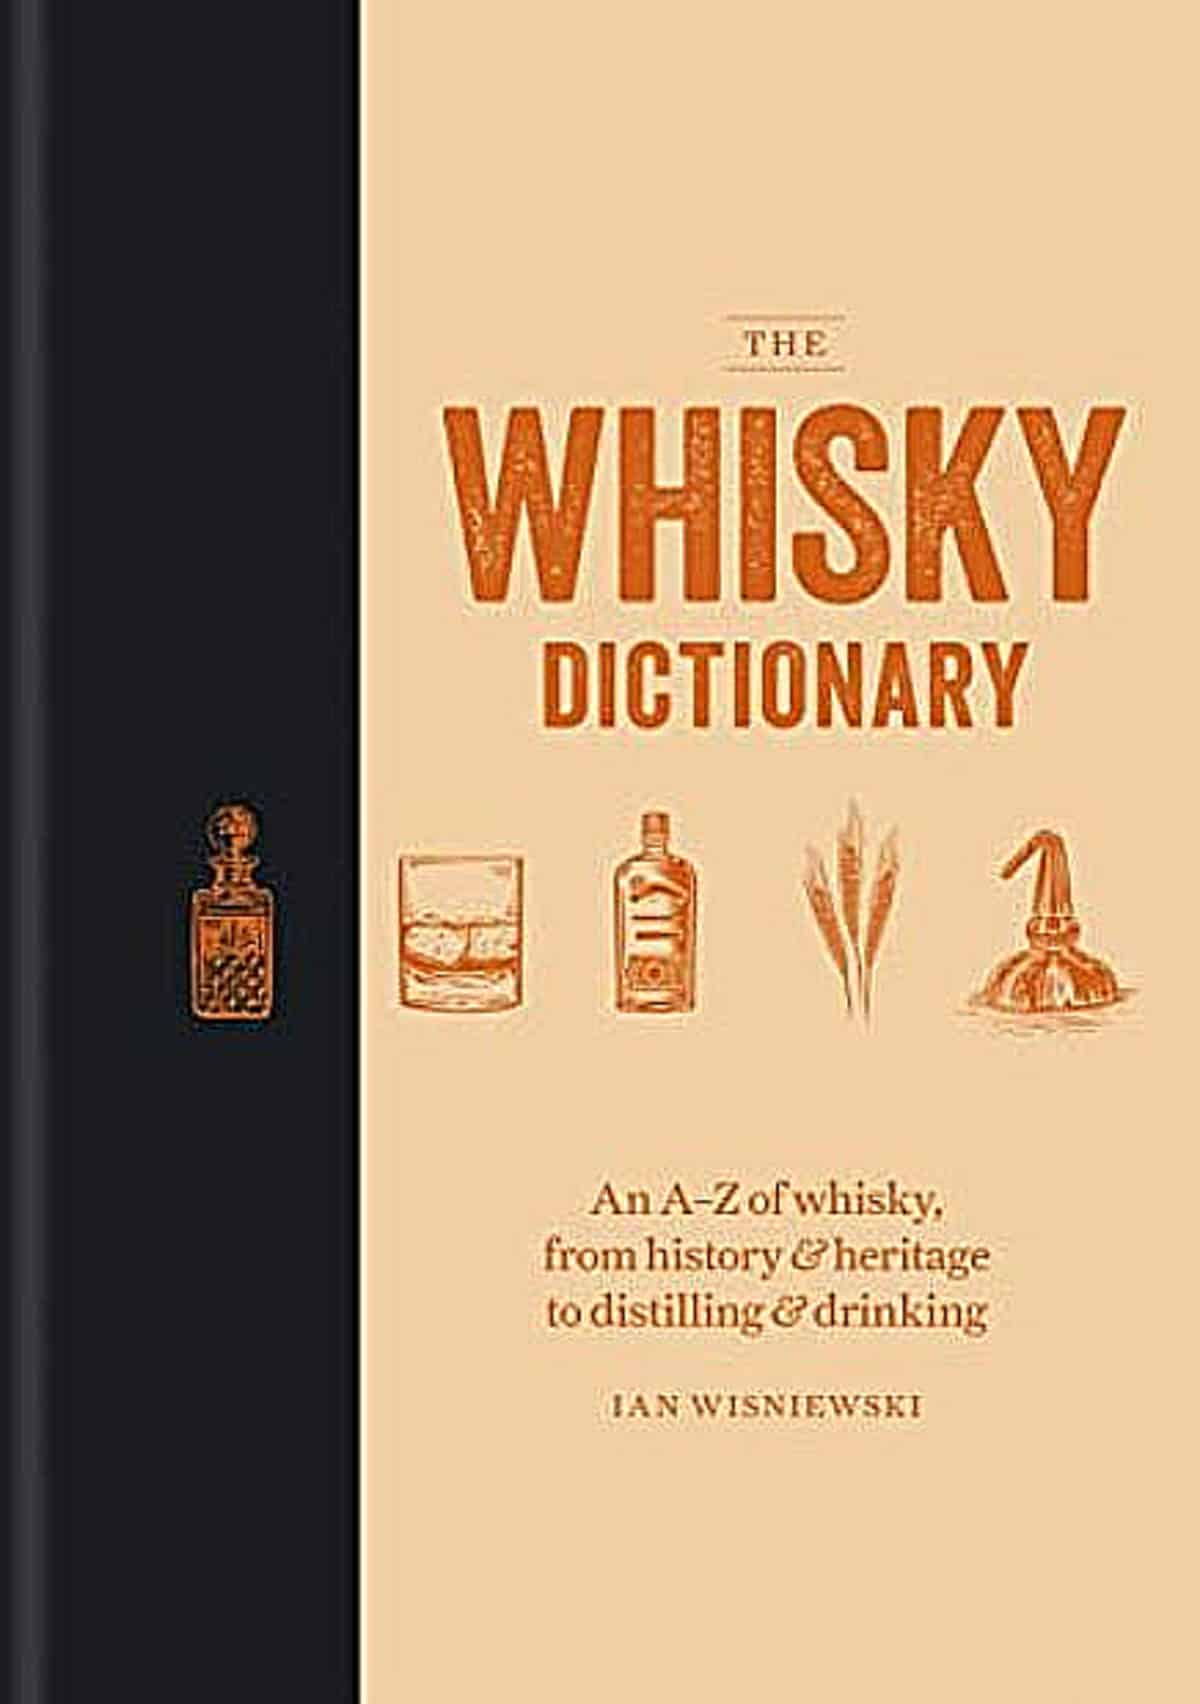 The pick up anytime and dive in reference book for whiskey knowledge. Pic credit: Mitchell Beazley.